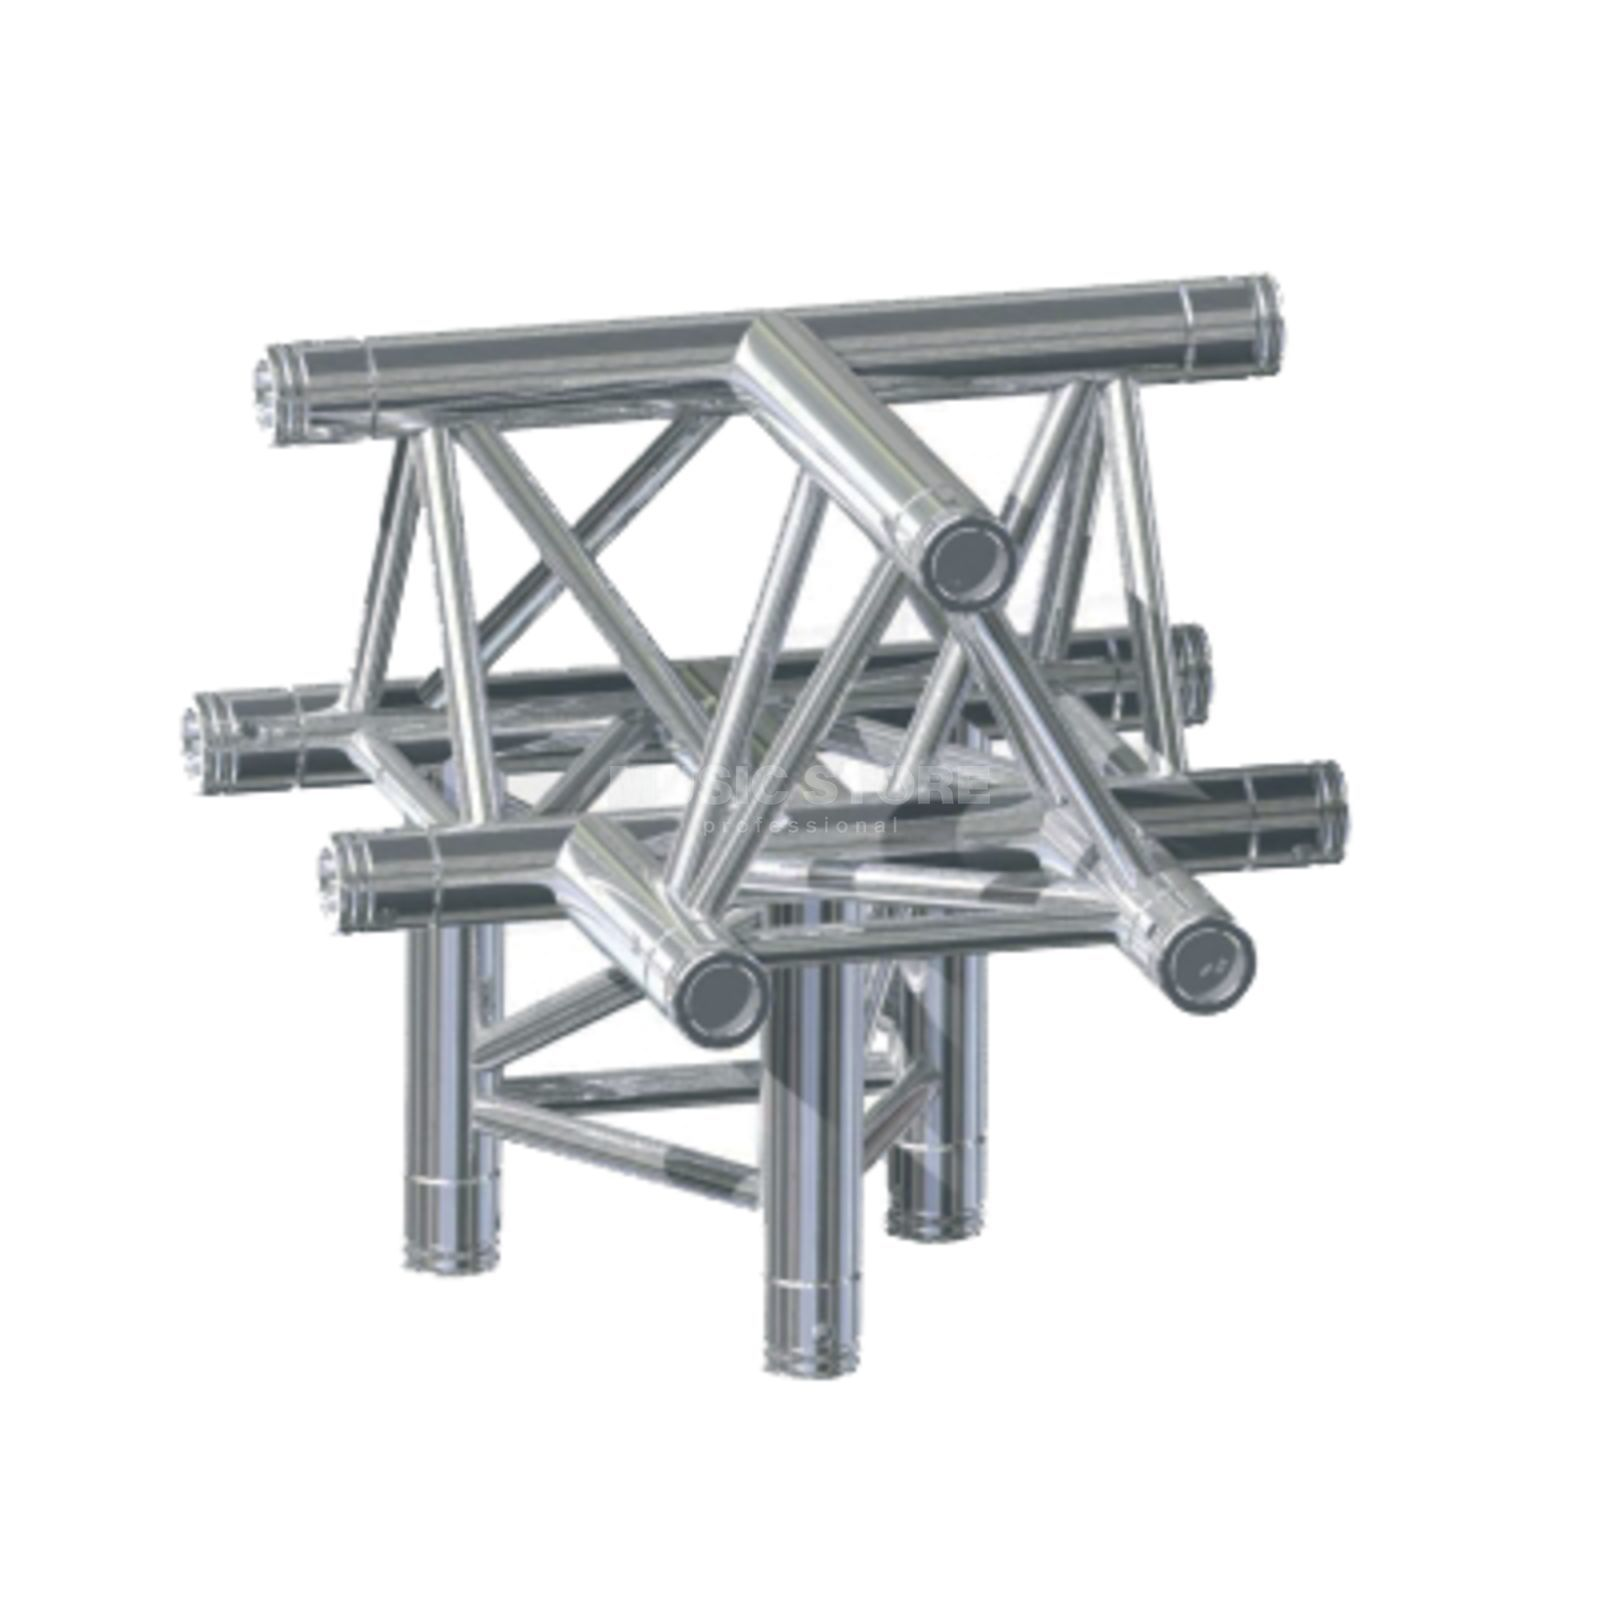 Global Truss F33 TD-T-Piece T43 3-Ppoint 4-Way Produktbillede